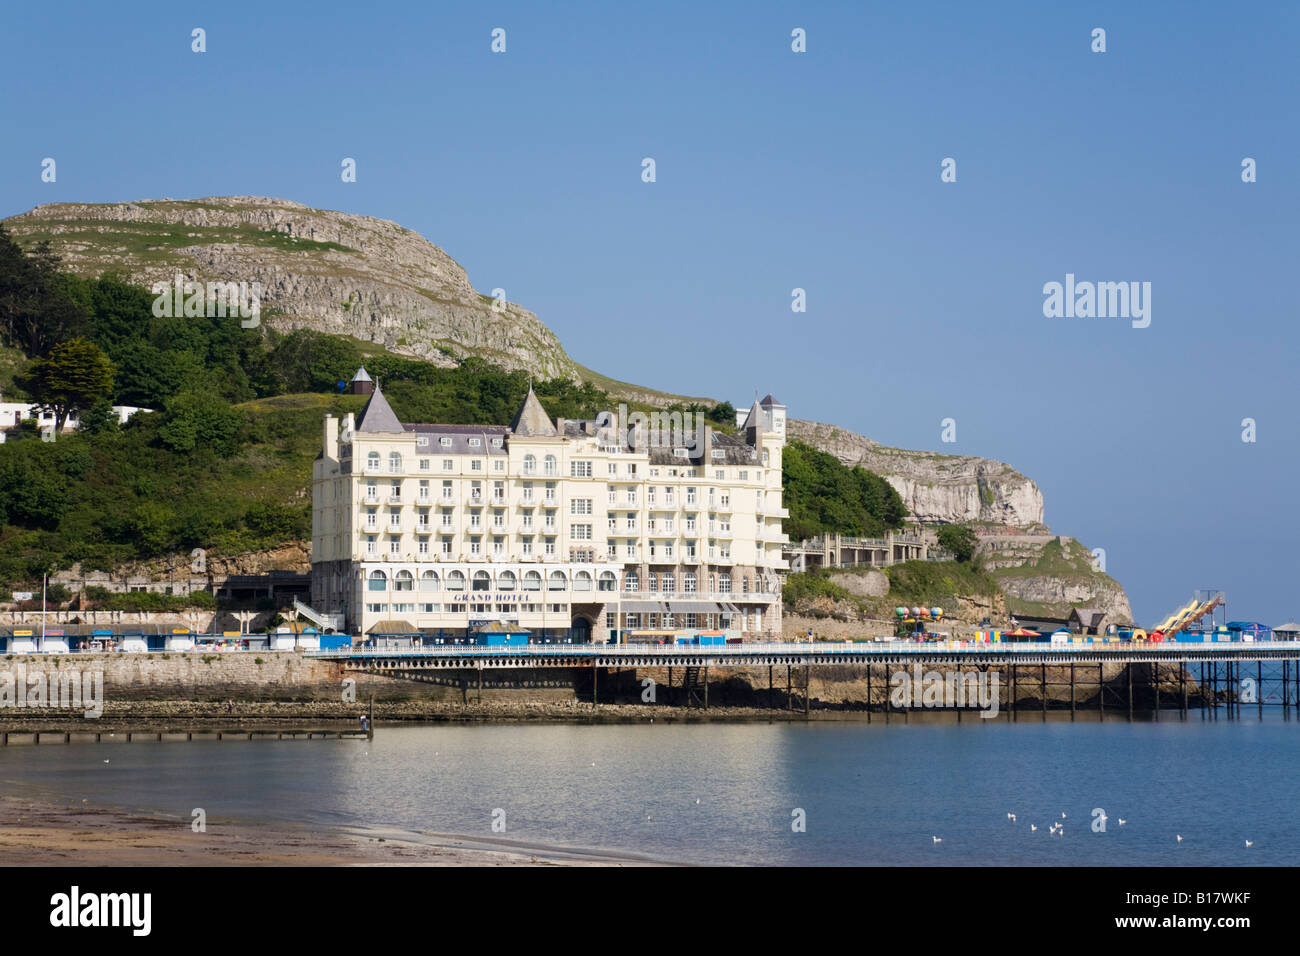 The Grand Hotel imposing Victorian building on seafront in tourist resort on Welsh coast in early summer. Llandudno - Stock Image